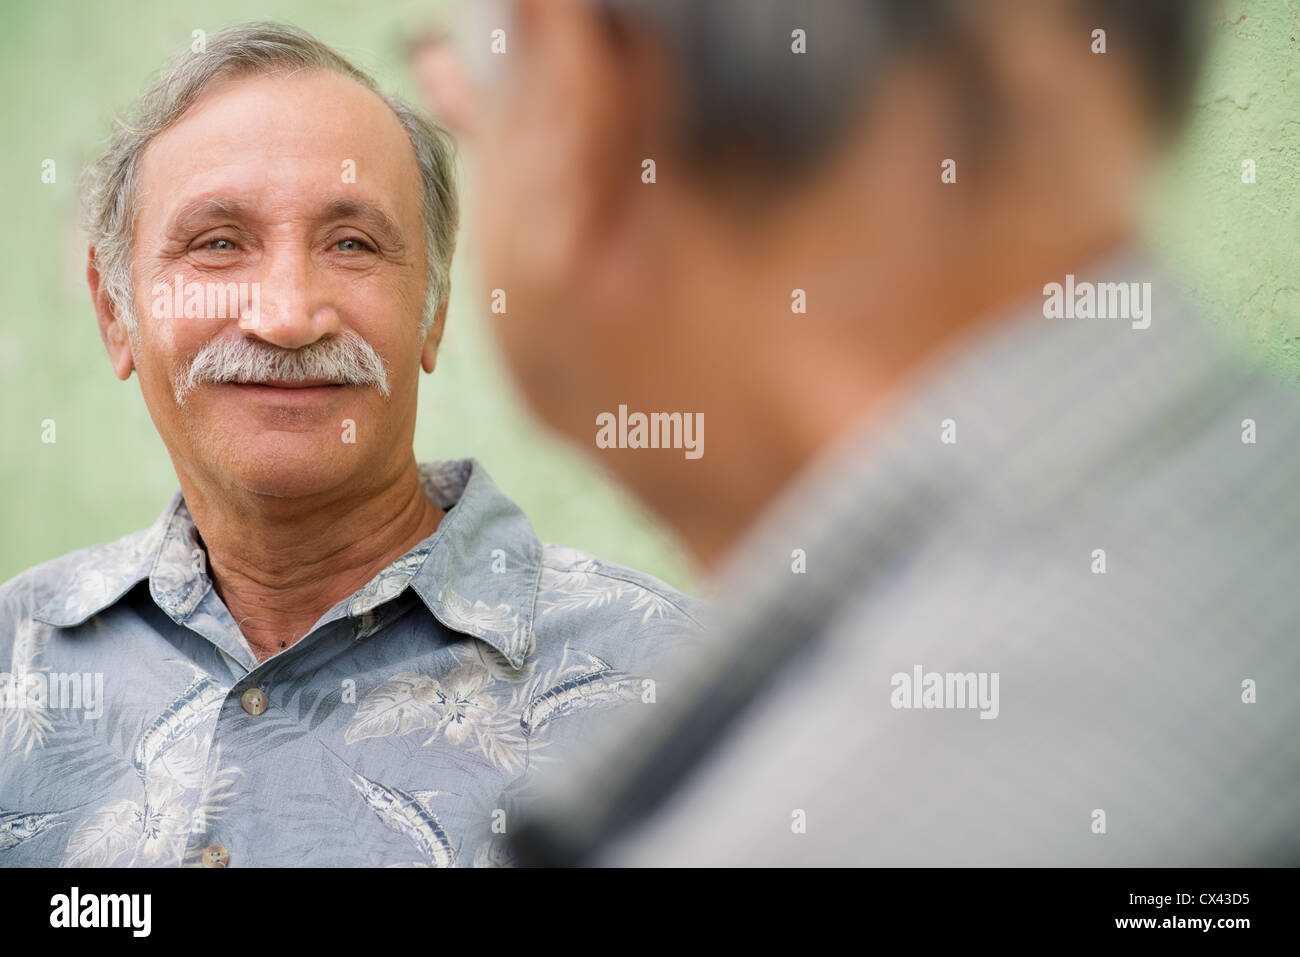 Retired elderly people and friendship, two old men meeting and talking in city park - Stock Image